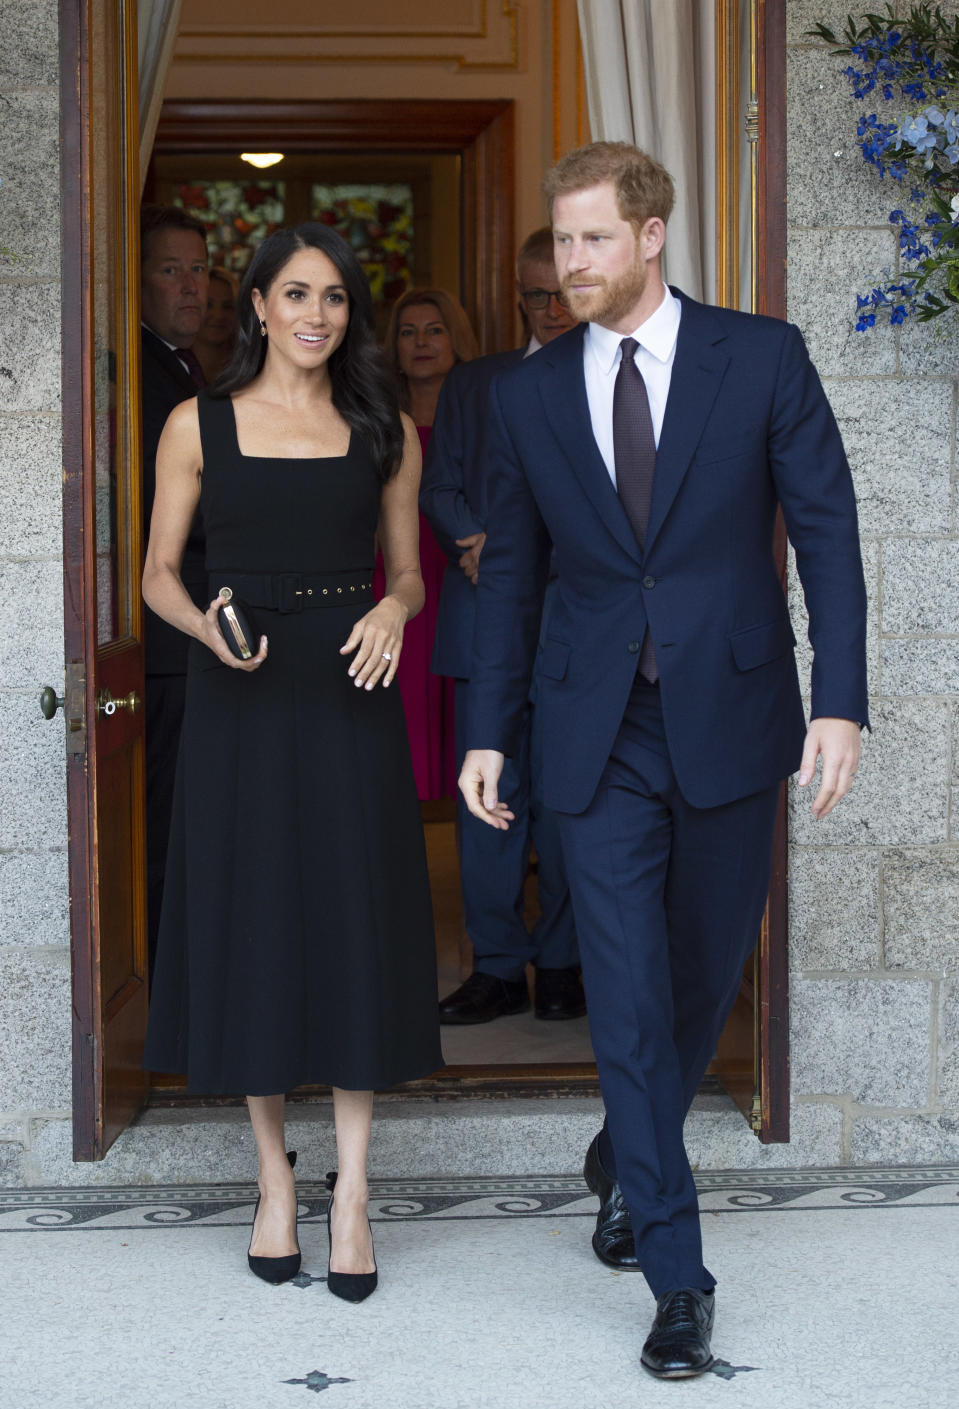 Once again, the Duchess of Sussex proved she understands the power of her wardrobe at a summer garden party in Ireland. The royal chose a little black dress by Emilia Wickstead shortly after news broke that the designer had criticised her wedding gown - a tactical move which quickly tackled any rumours of a rift. She finished the evening look with her go-to Aquazzura shoes and Birks earrings <em>[Photo: Getty]</em>